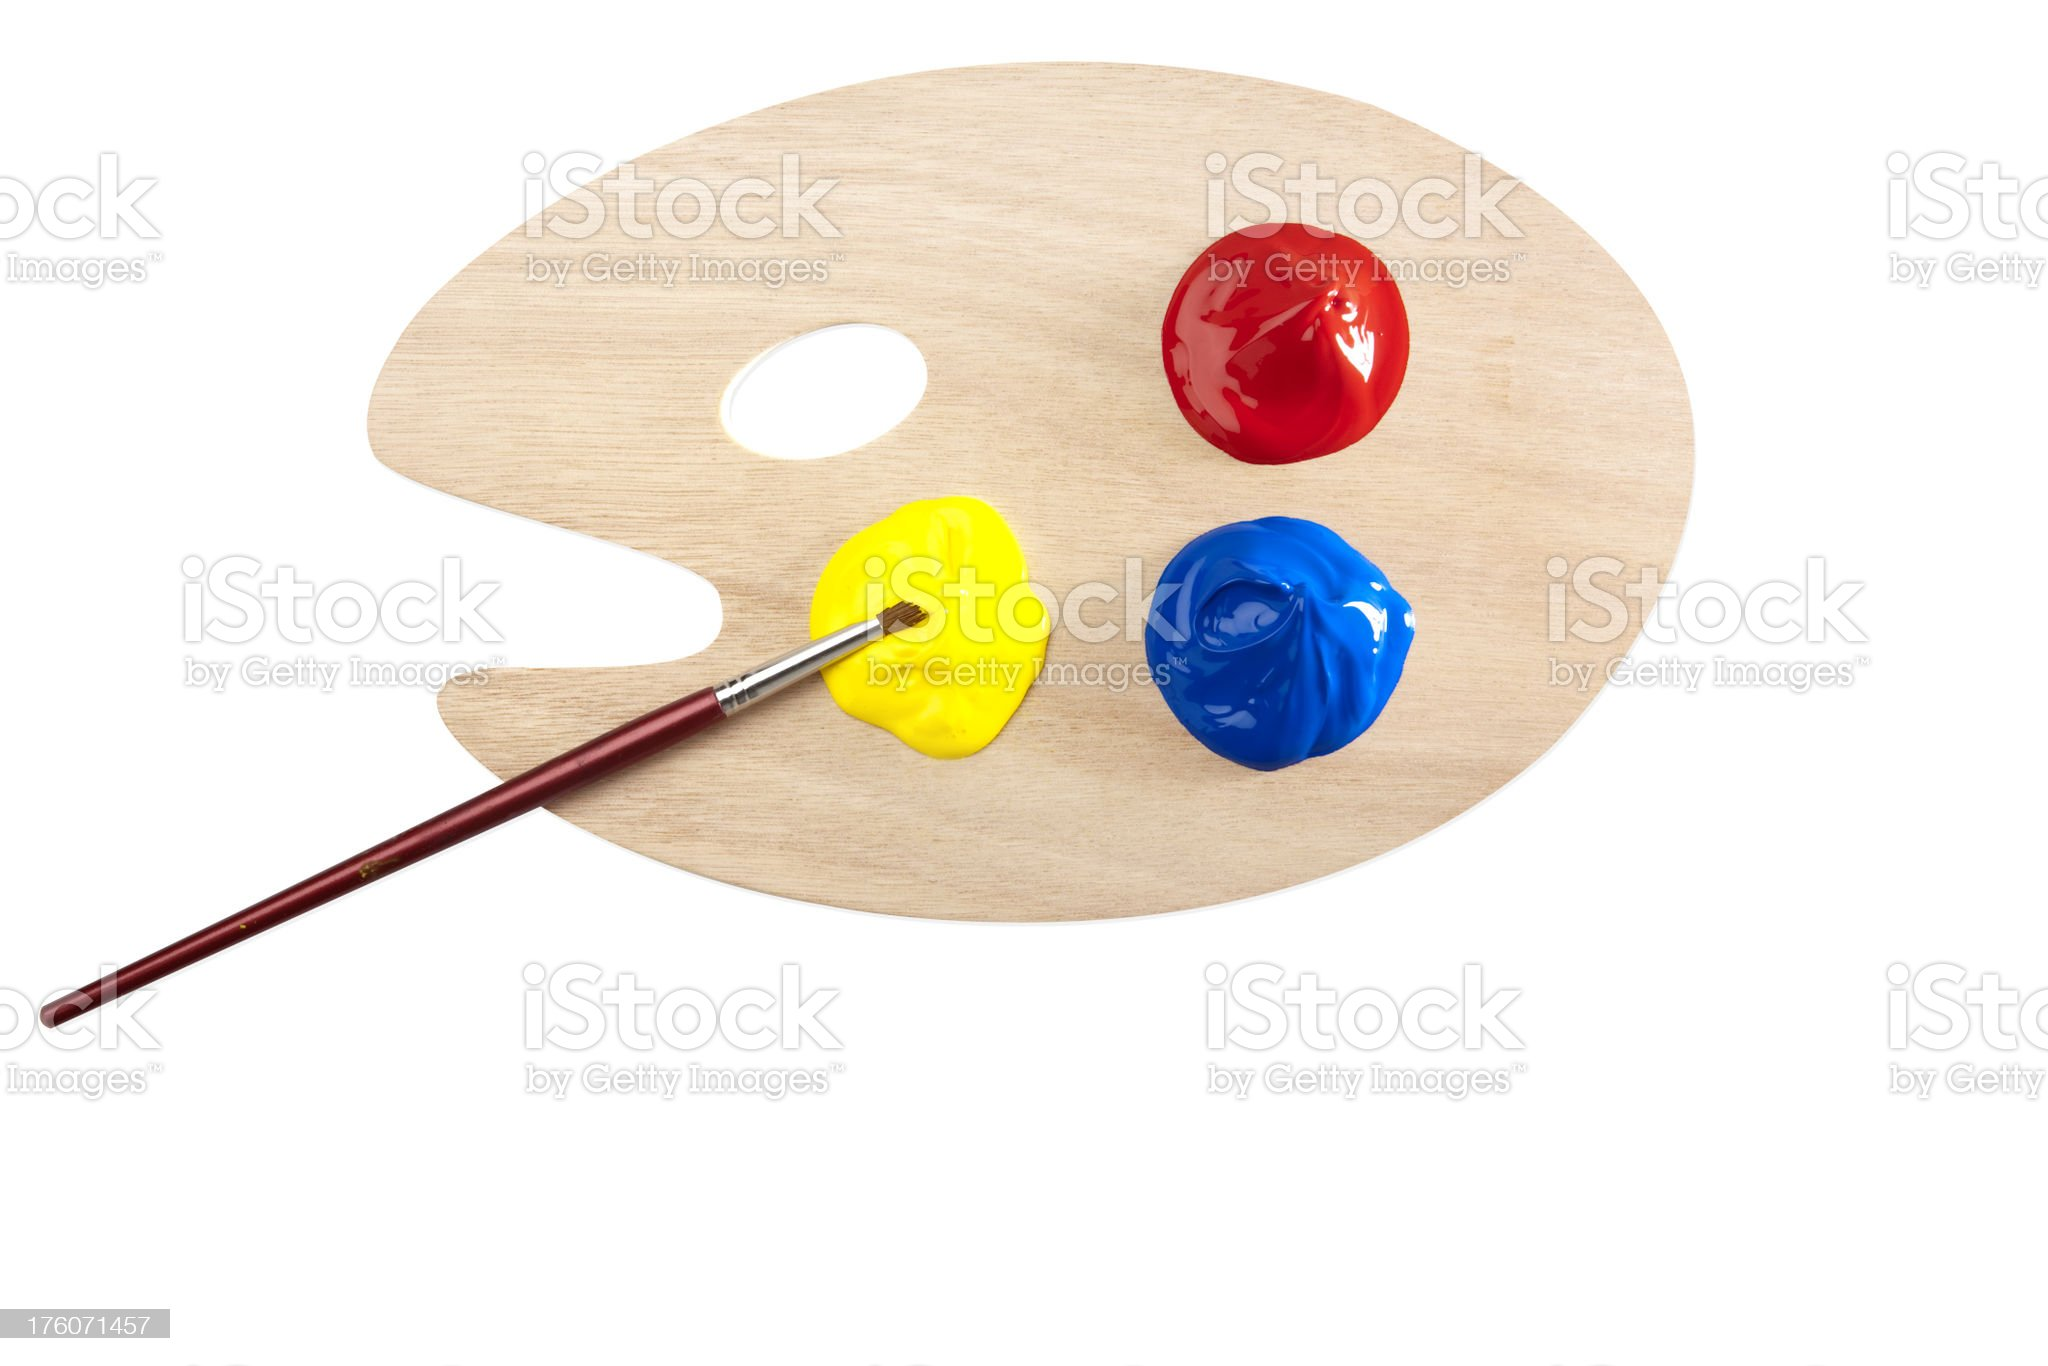 Palette and primary colors royalty-free stock photo